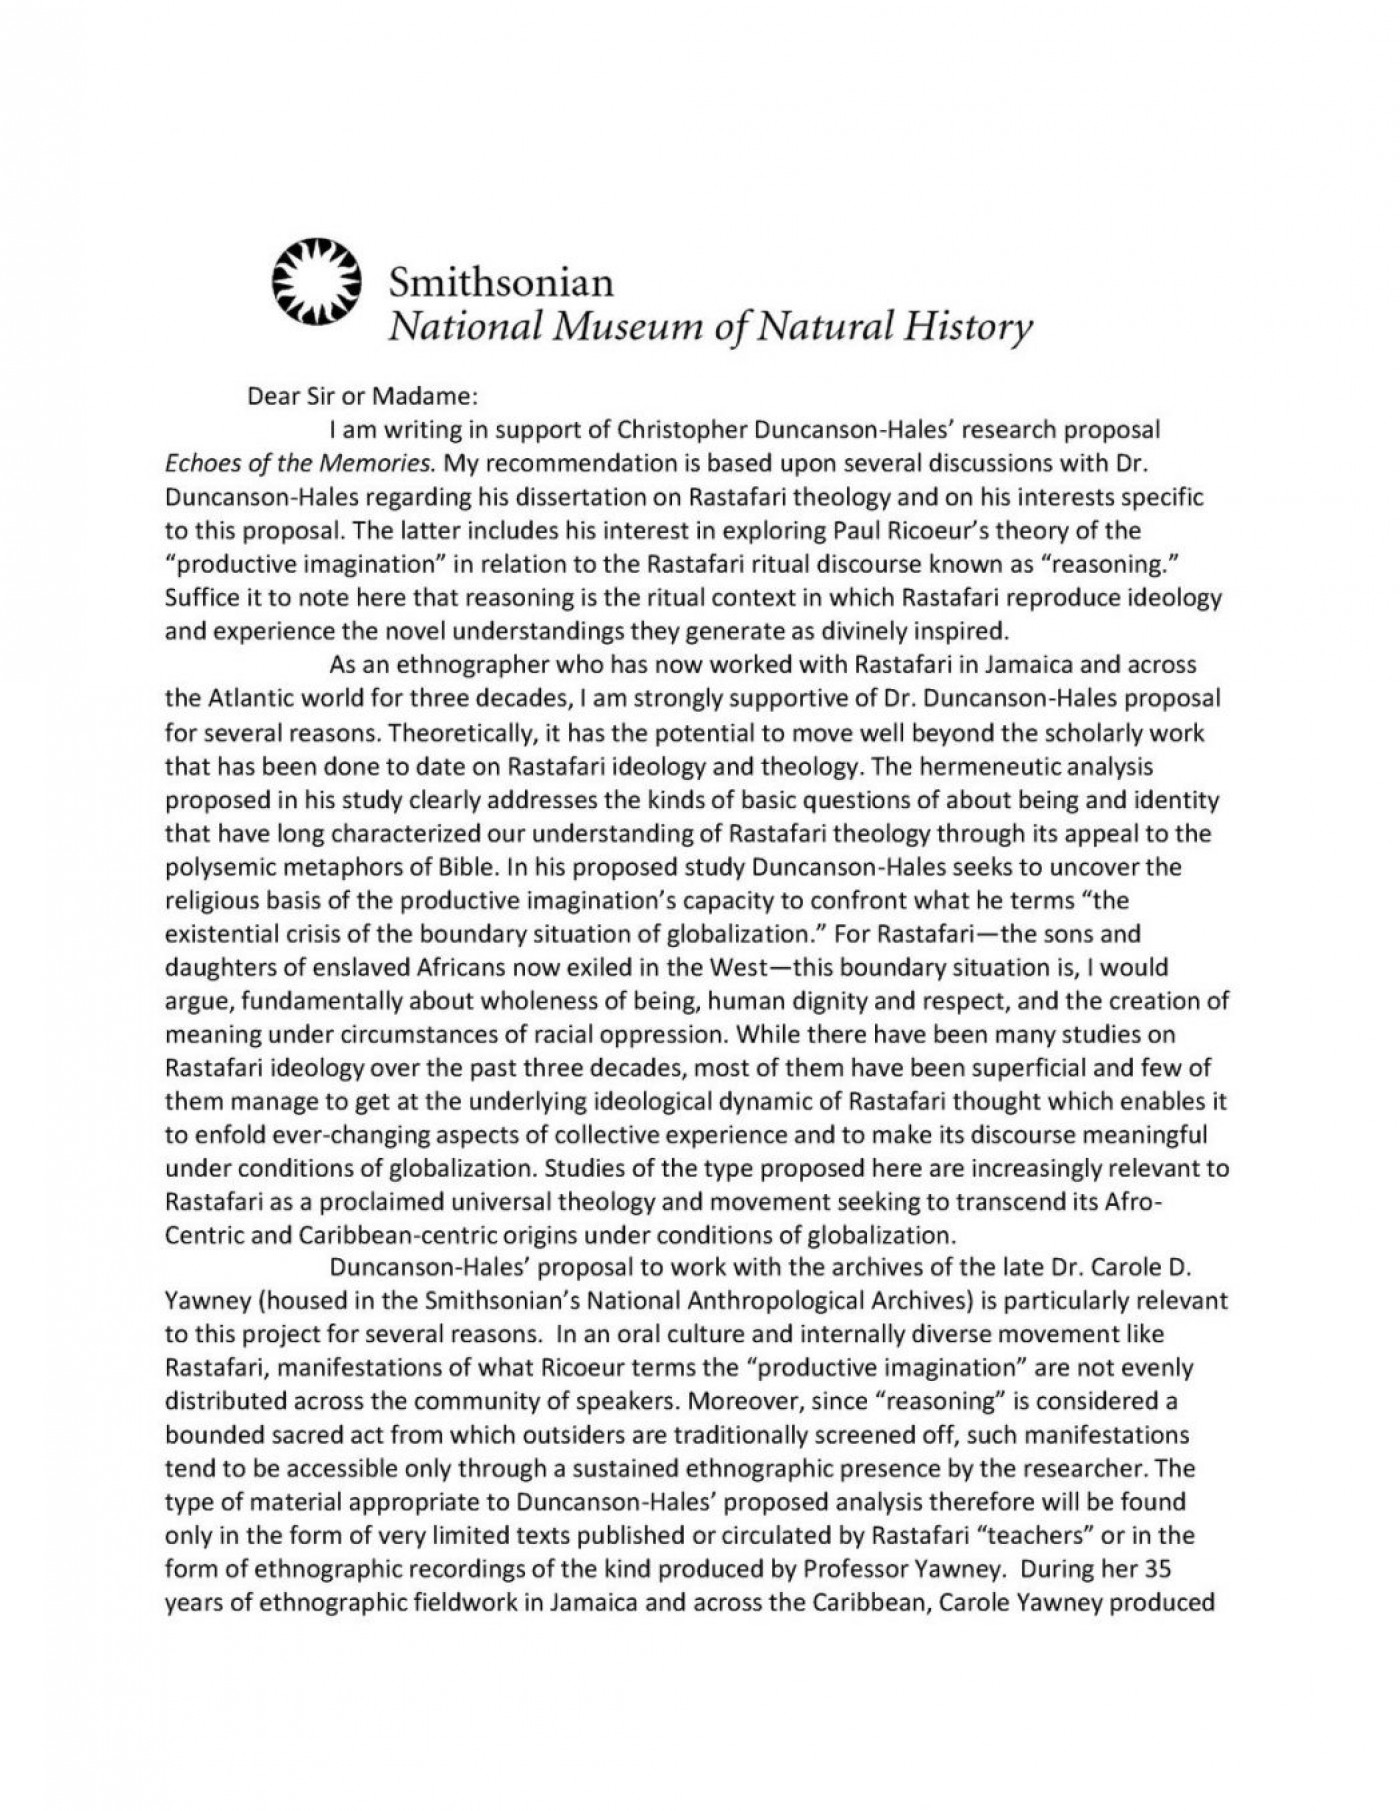 002 Ethnographic Essay Proposal Example Collect How To Write An Dr8 1048x1356 Unique Examples Micro Ethnography 1400